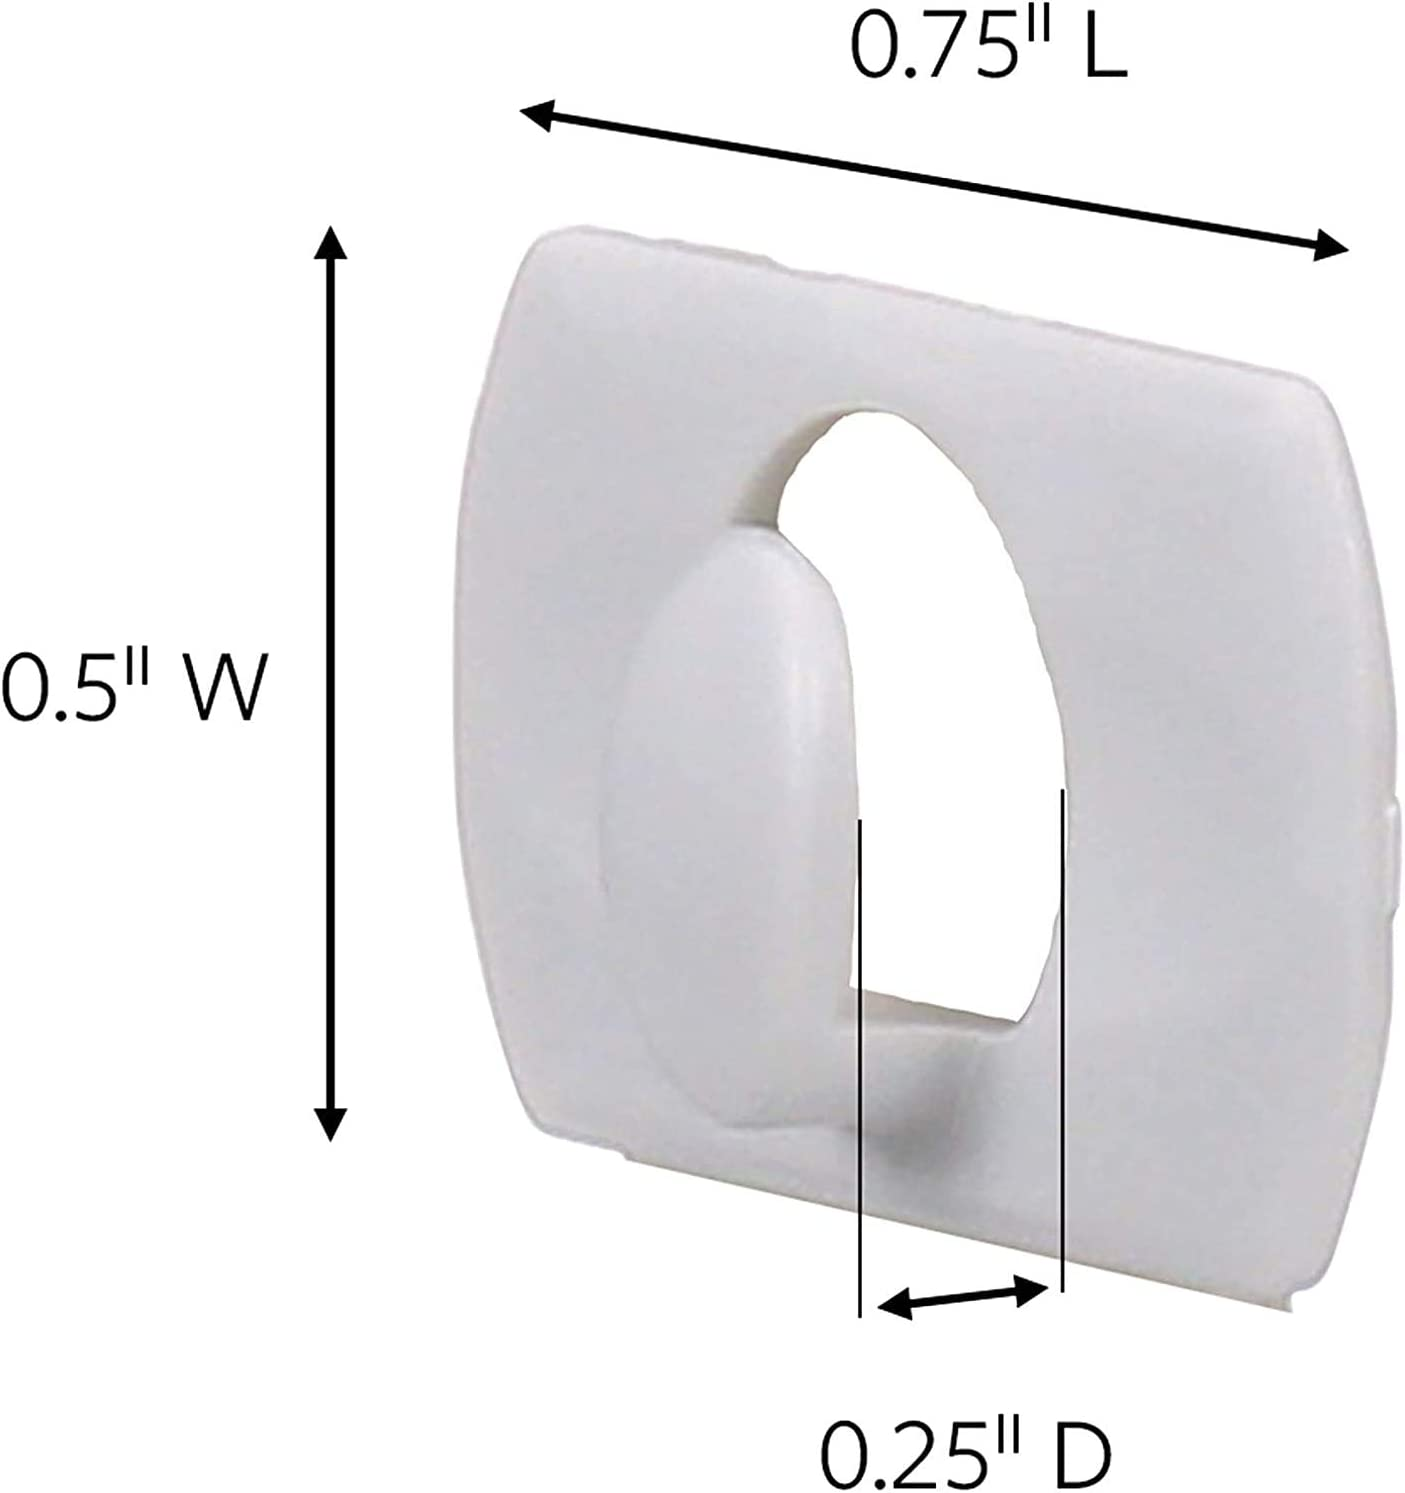 17026-40ES 1 40-Clips Decorate Damage-Free White Command Decorating Clips